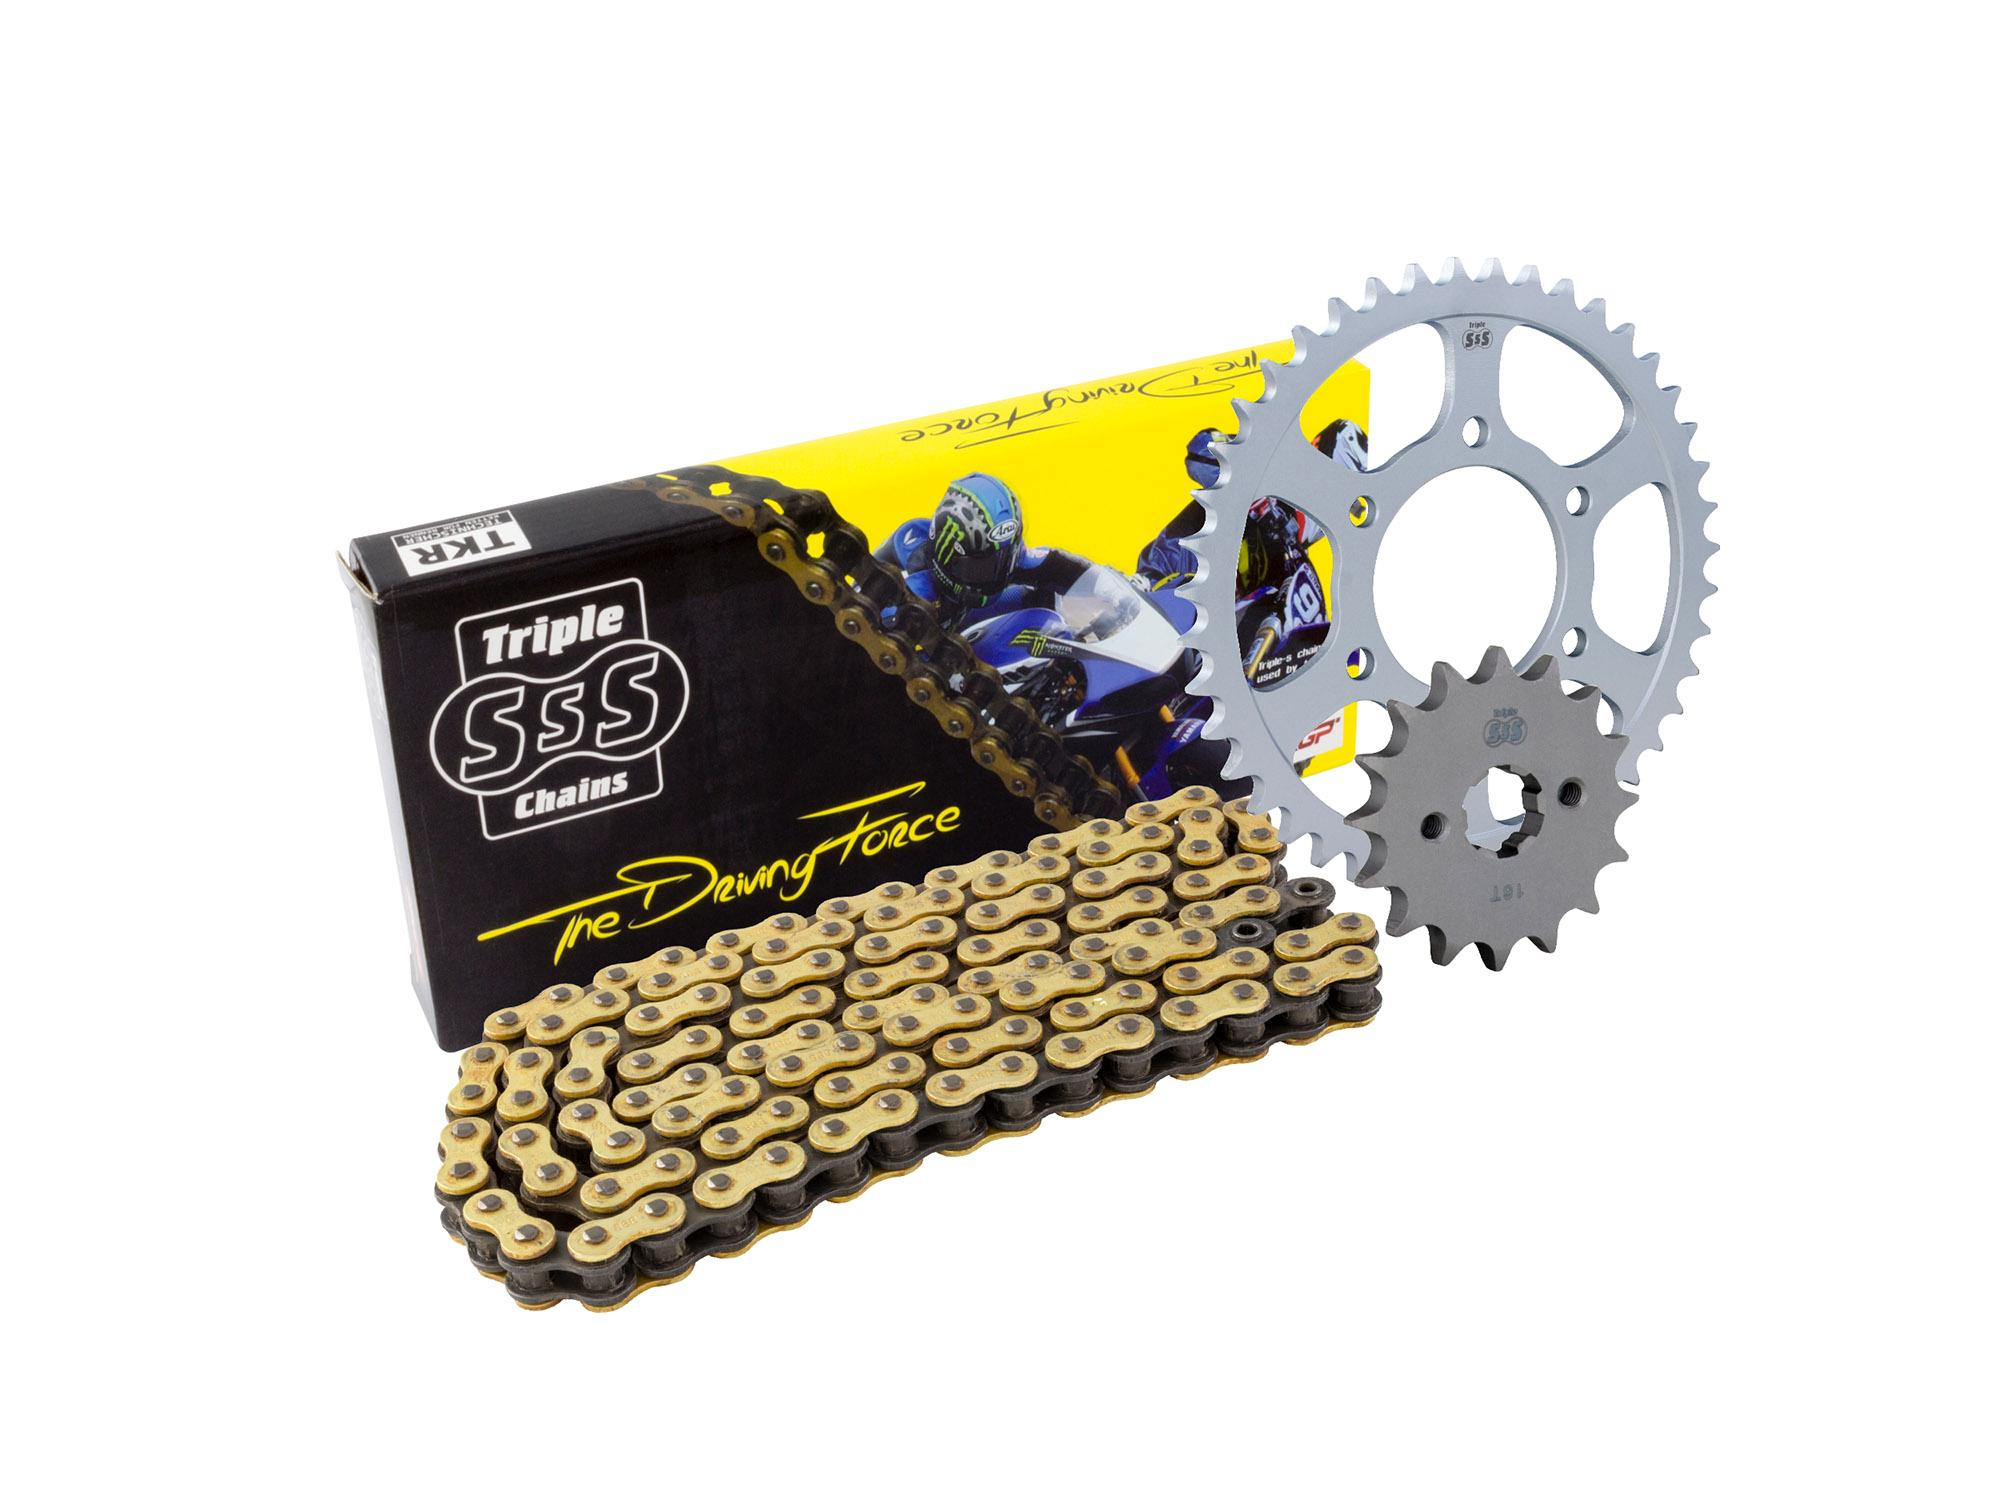 Yamaha XJR1300 07-10 Chain & Sprocket Kit: 17T Front, 38T Rear, HD O-Ring Gold Chain 530H 110 Link